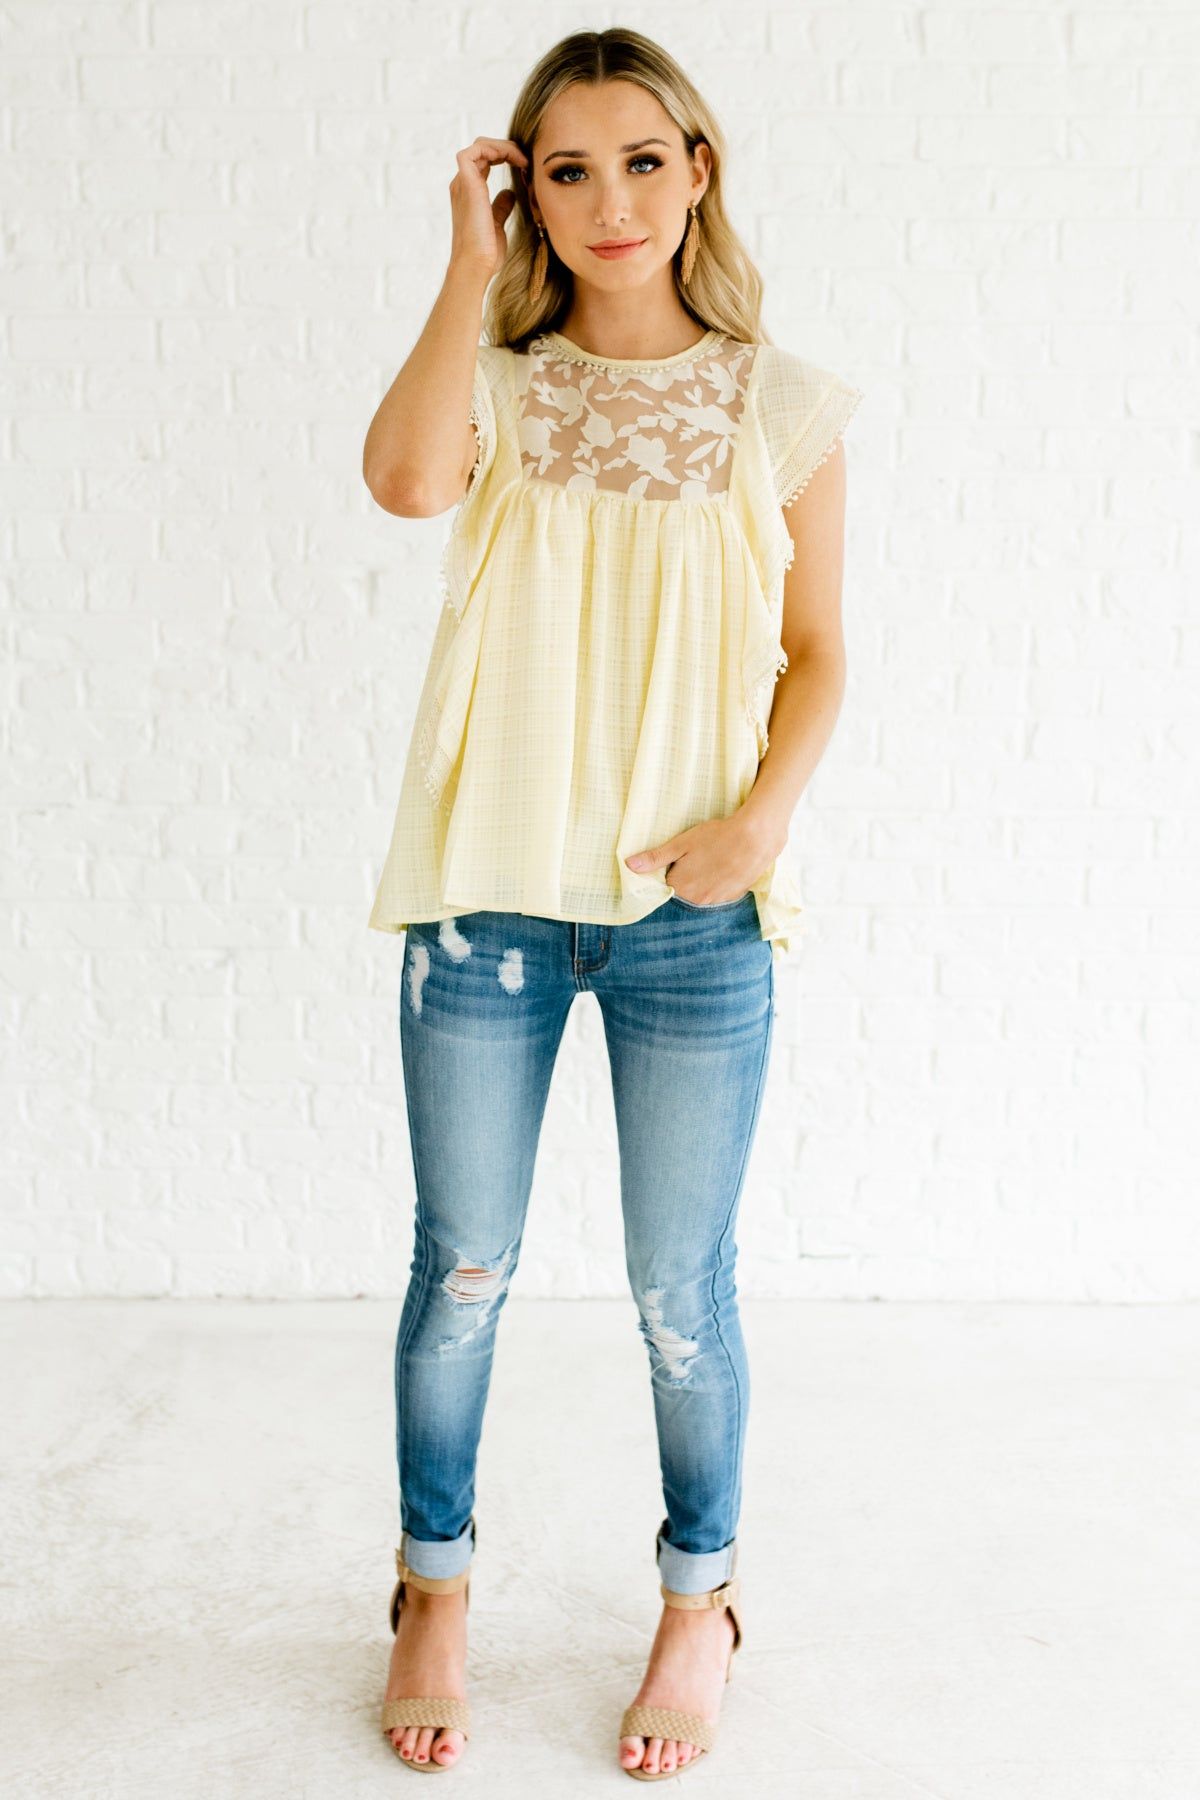 b60a46654a3fa Pastel Yellow Butterfly Sleeve Ruffle Tops Affordable Online Boutique